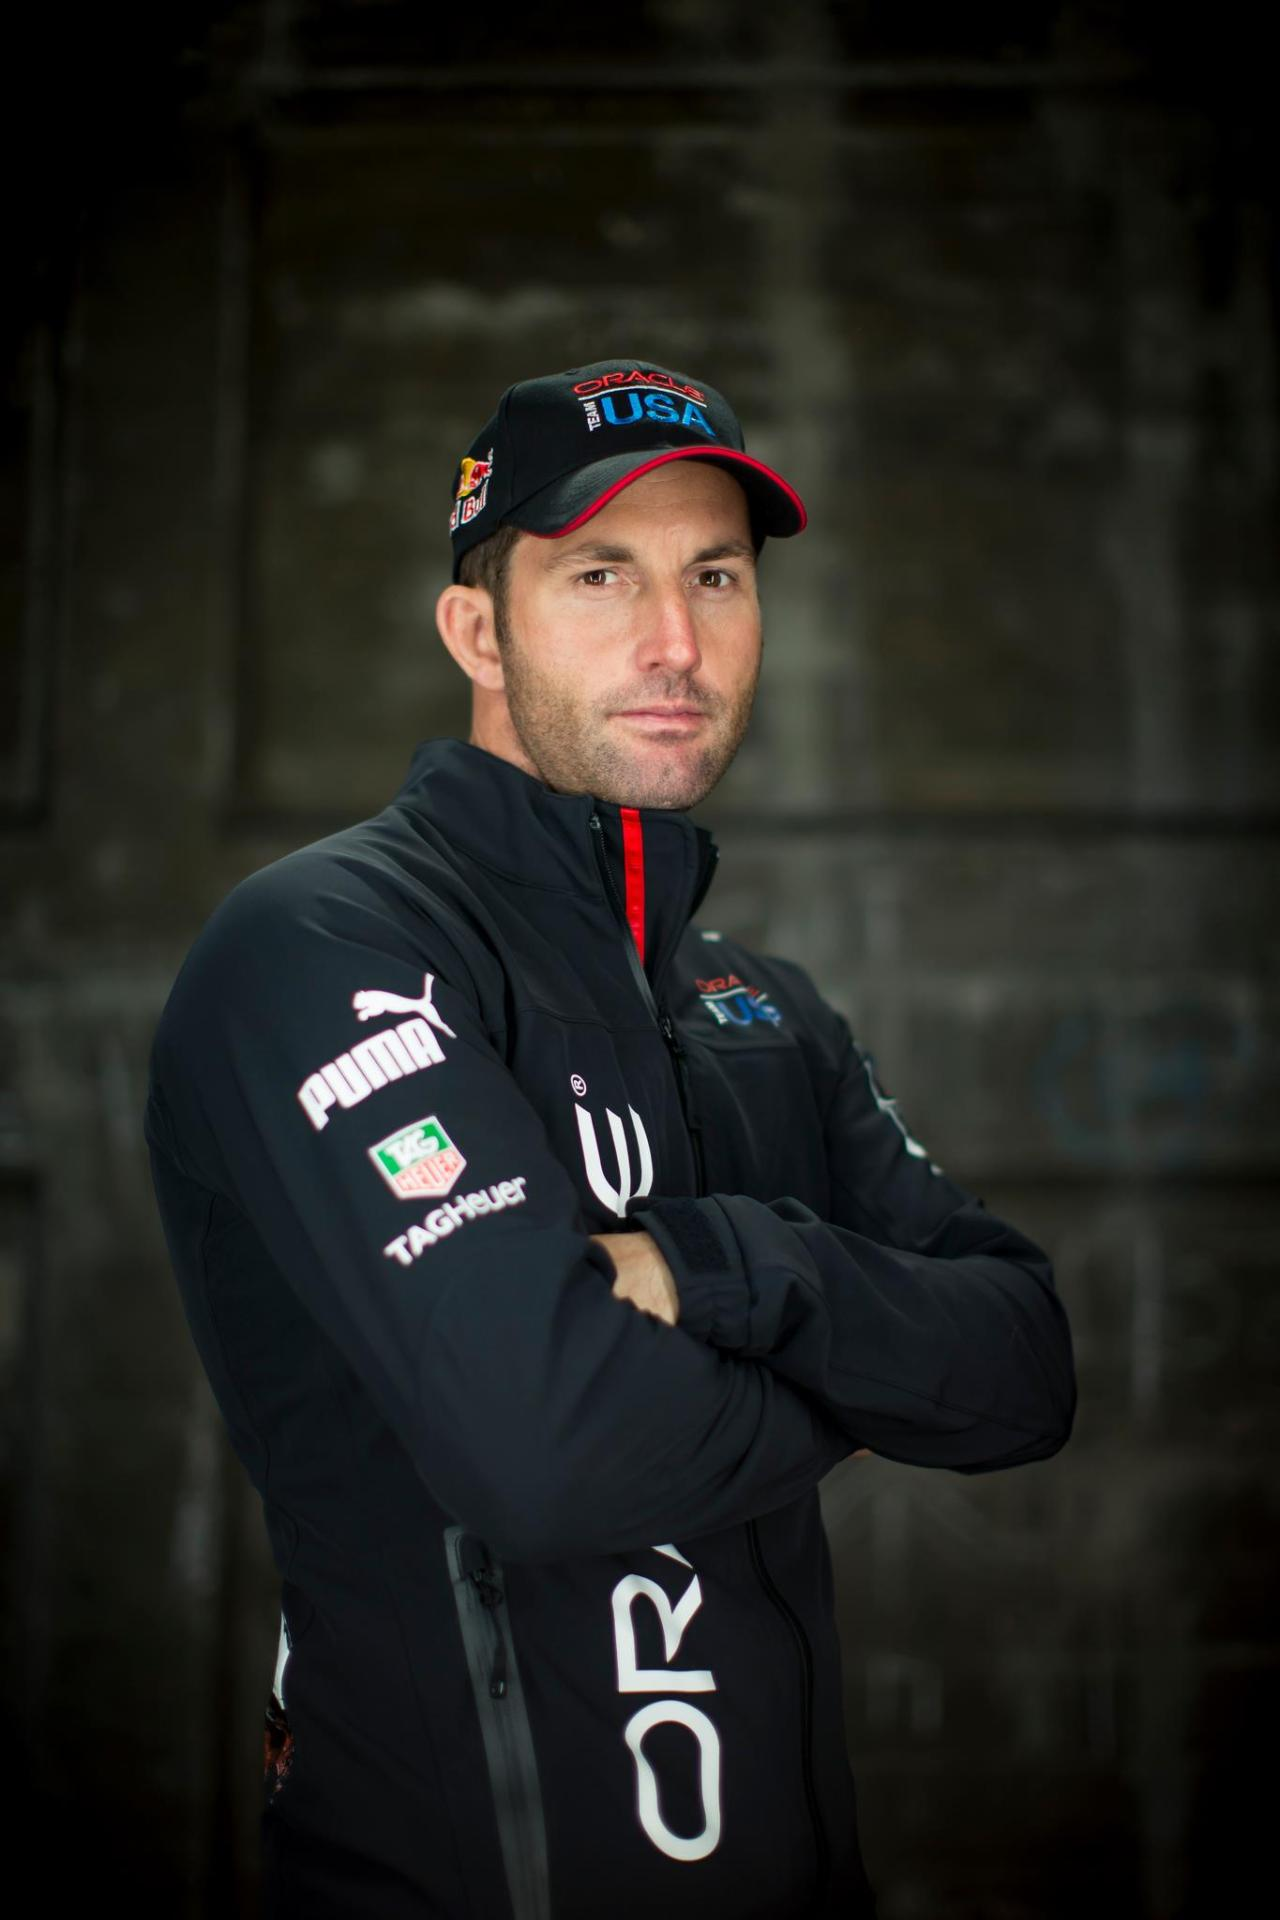 Ben Ainslie, knighted in the Queen's New Year Honours, is now officially Britain's latest great mariner.          http://bit.ly/UcHqkM